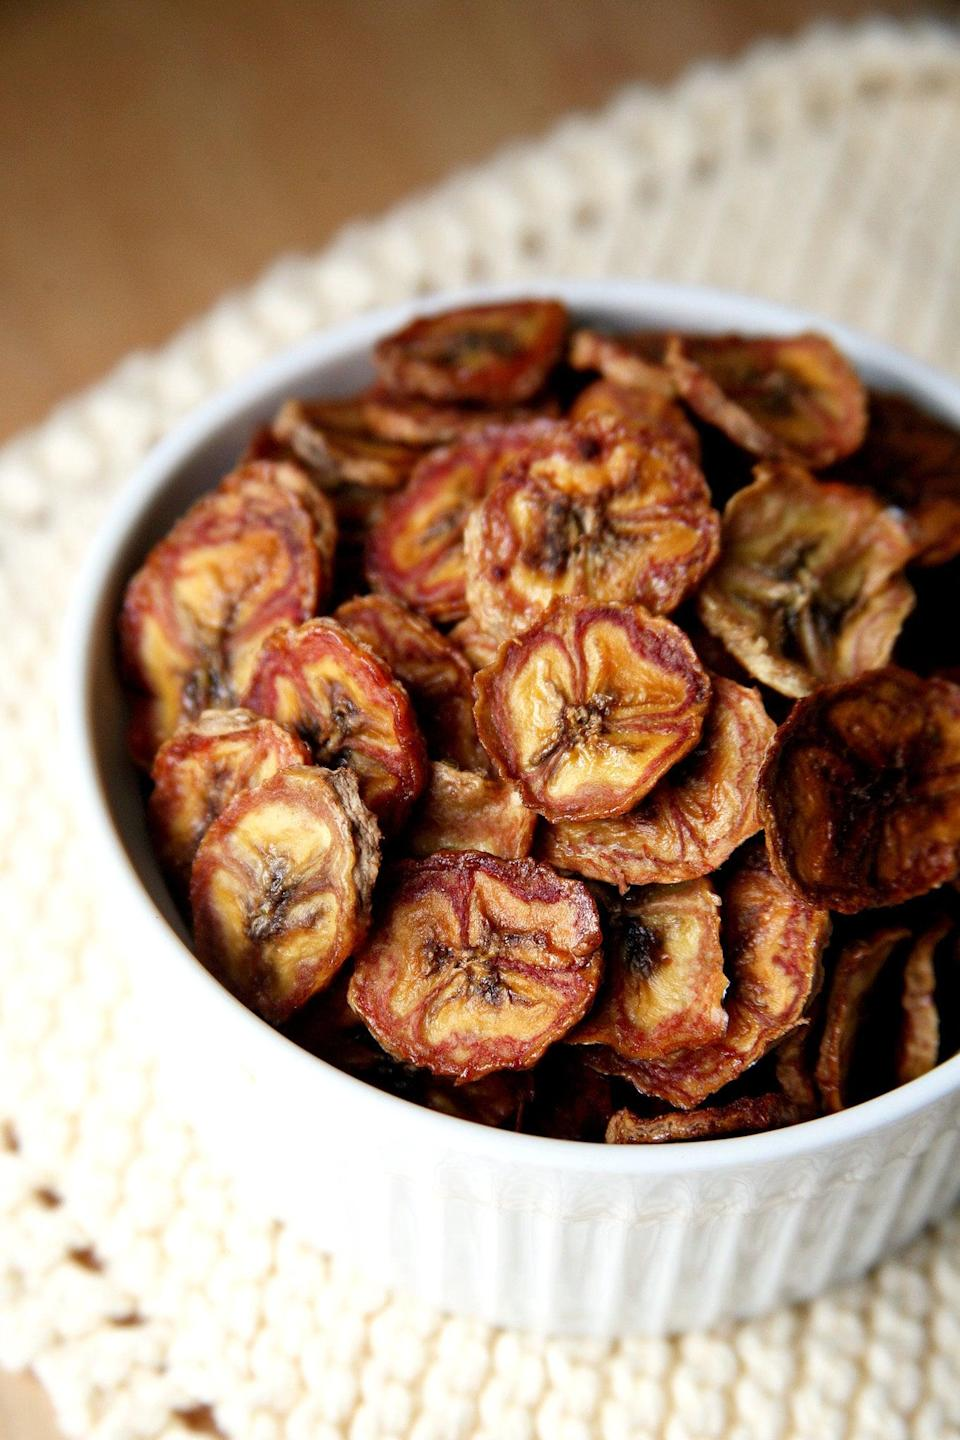 """<p>Make your own banana chips! They're seasoned with cinnamon to satisfy sugar cravings, and so perfectly crunchy!</p> <p><strong>Get the recipe:</strong> <a href=""""https://www.popsugar.com/fitness/Baked-Banana-Chips-36939744"""" class=""""link rapid-noclick-resp"""" rel=""""nofollow noopener"""" target=""""_blank"""" data-ylk=""""slk:baked banana chips"""">baked banana chips</a></p>"""